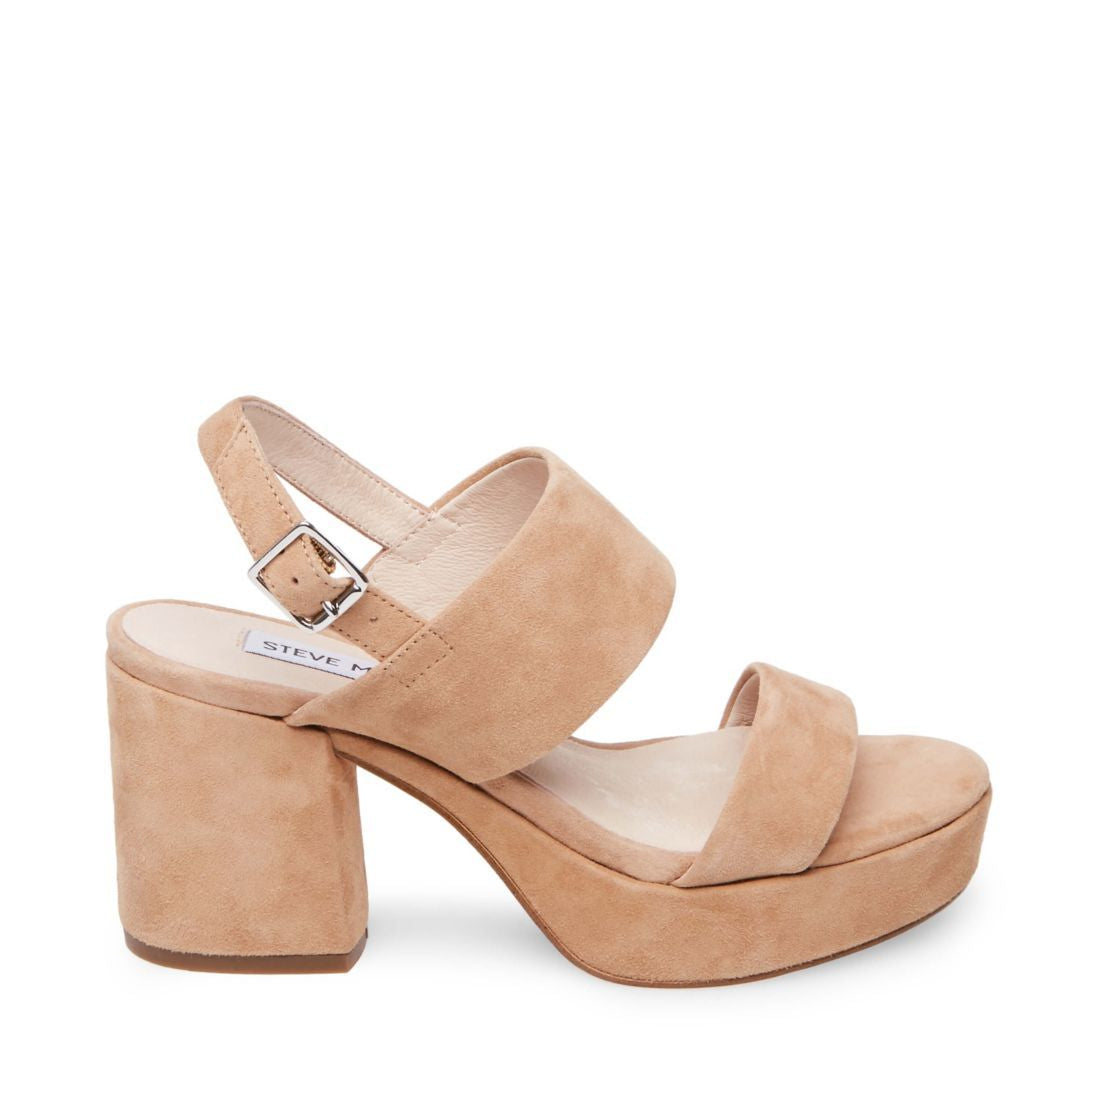 f0aa7f5fa943 All Products - Birthday –translation missing  en.general.meta.tags–  translation missing  en.general.meta.page – Steve Madden